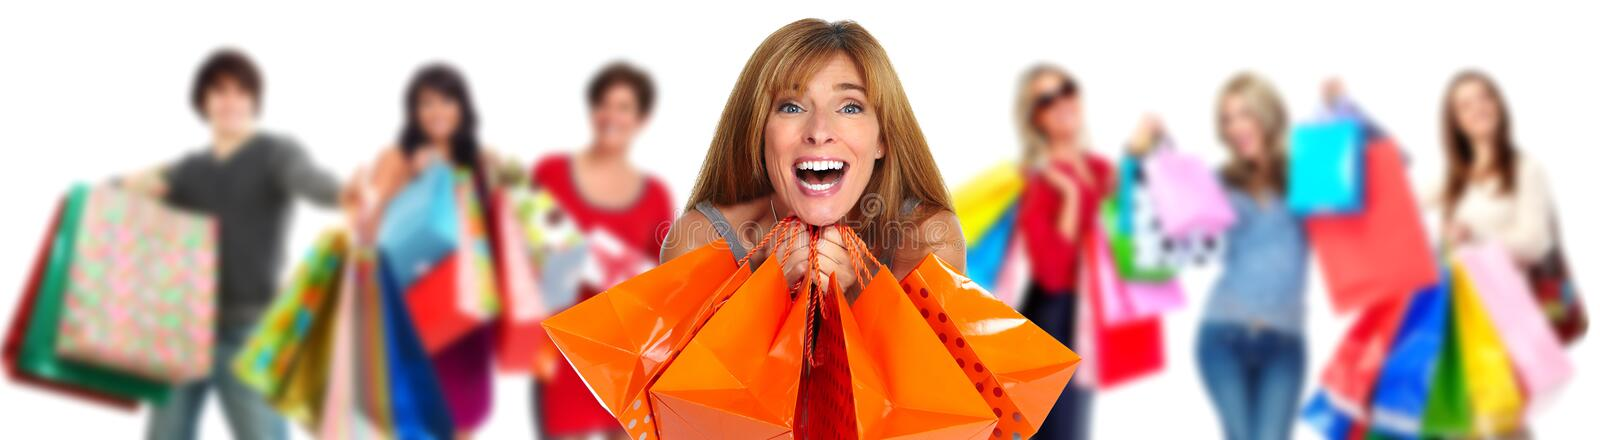 Group of happy shopping customers. stock photo